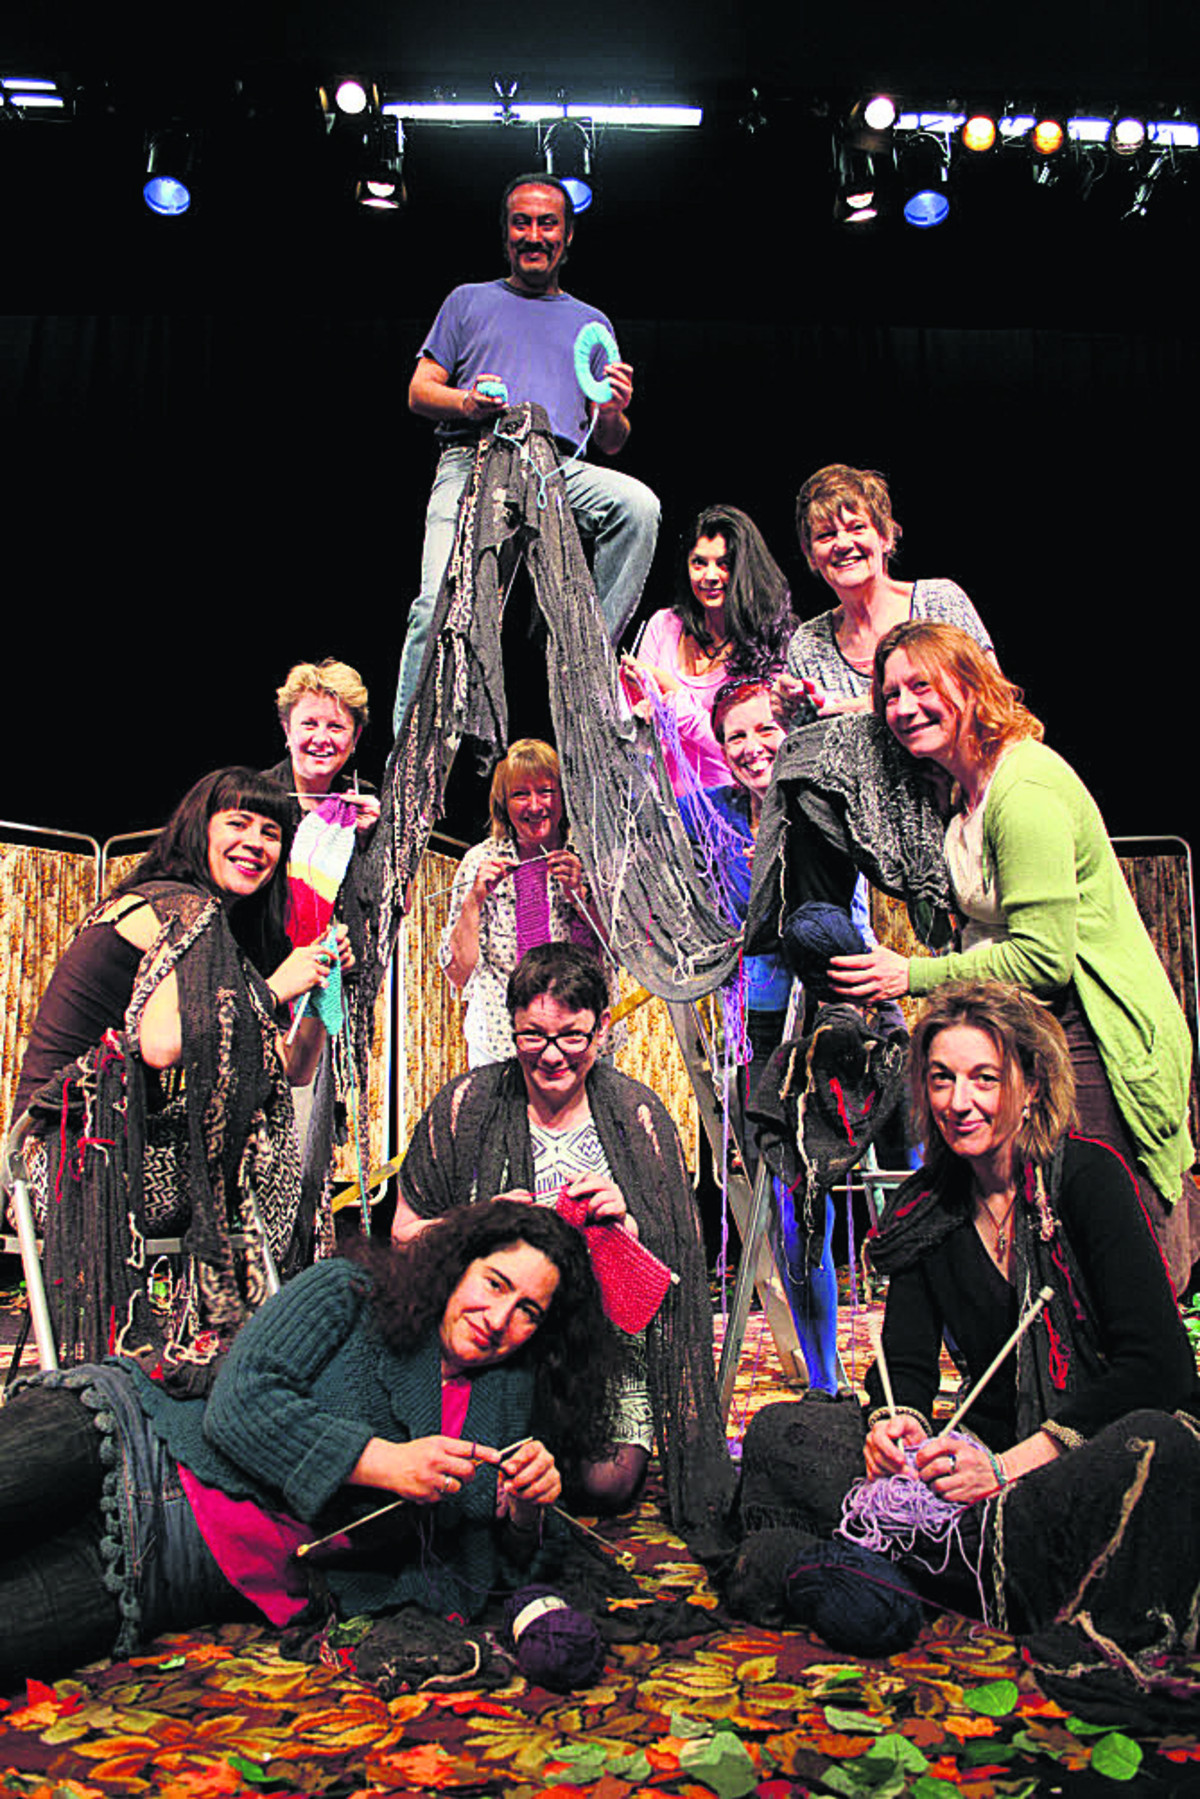 The Knitting Circle's Sanjiv Hayre is pictured on the ladder with fellow cast members, the writer, crew and volunteer knitters